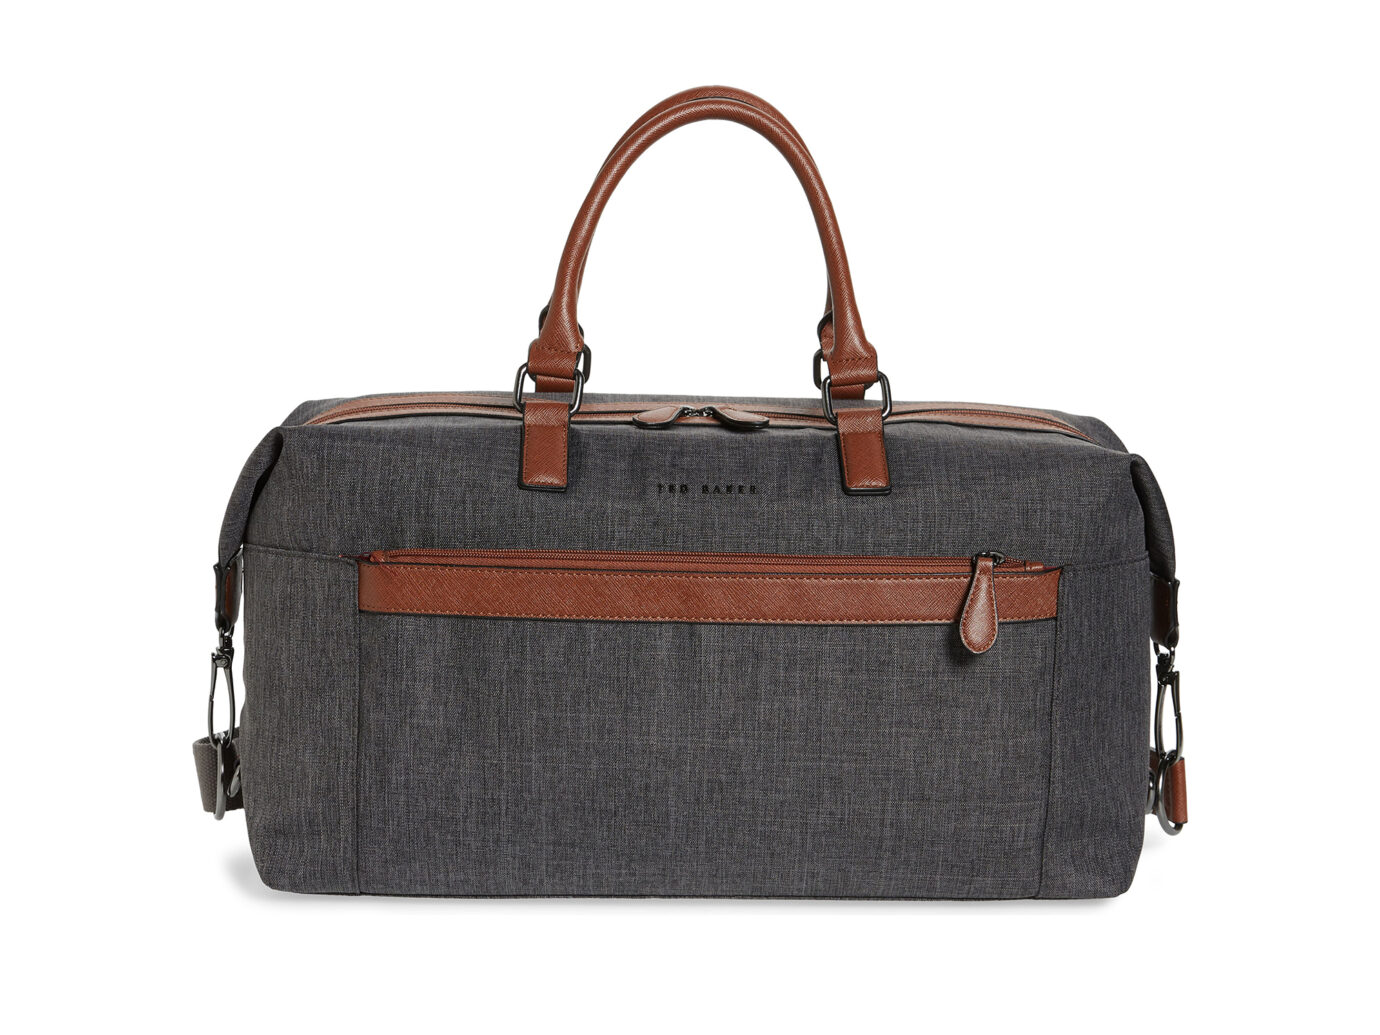 Ted Baker London duffle bag